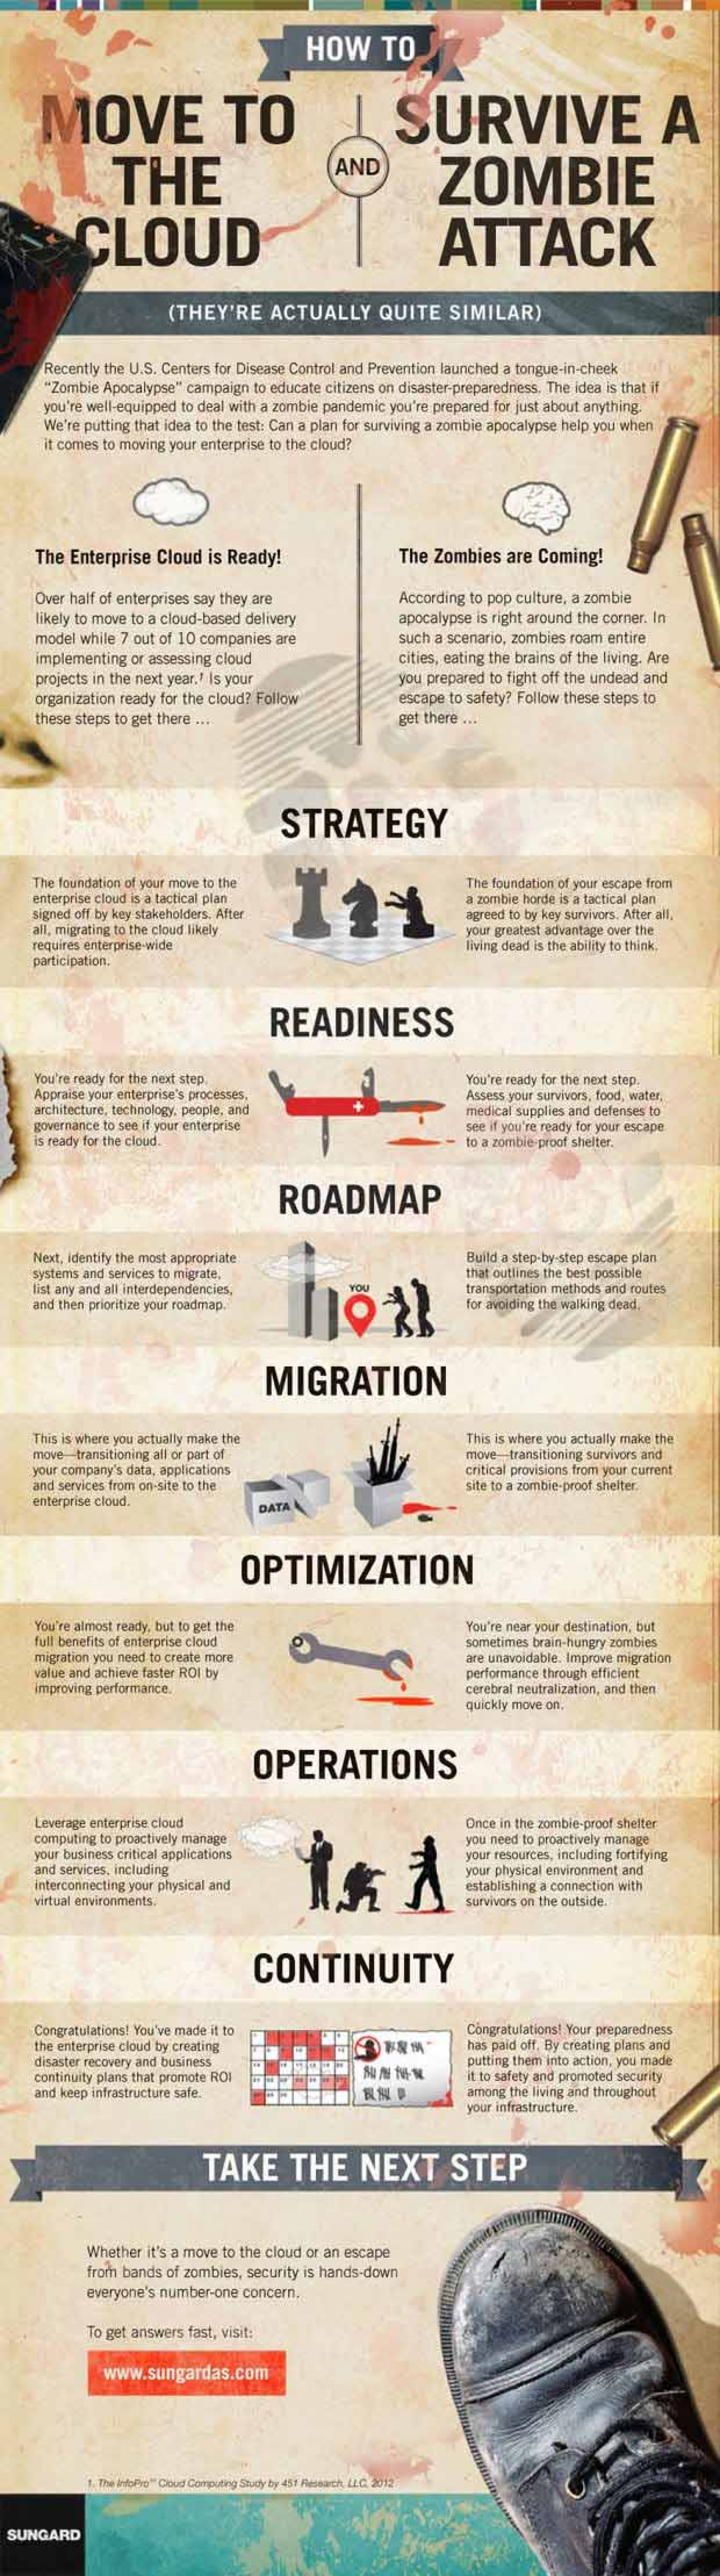 Shift Towards the CLOUD And Be Safe From Zombies Attack! Infographic